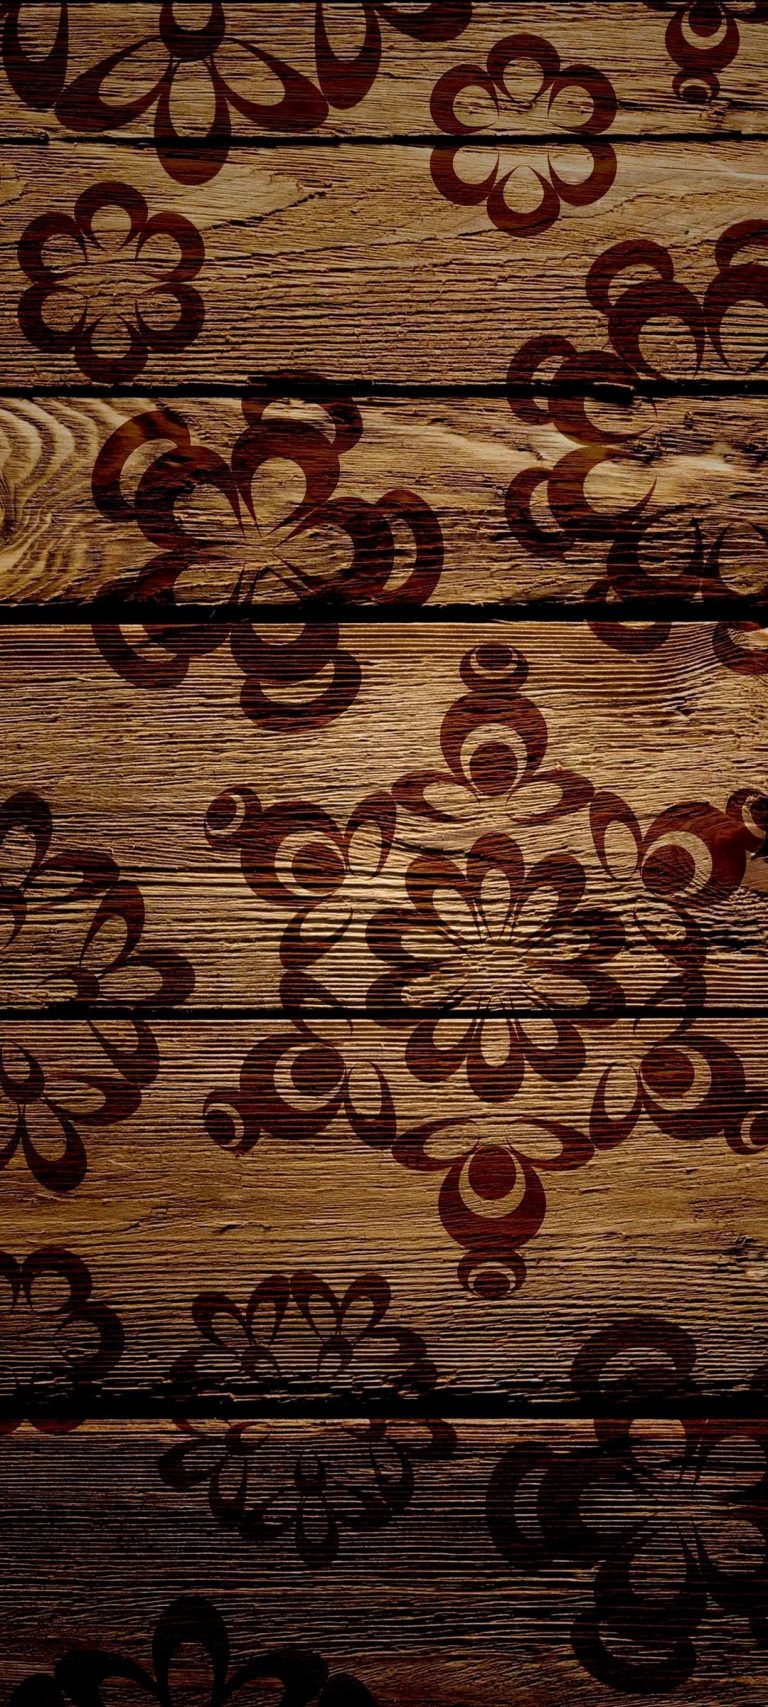 Patterns Surface Color Texture Wood 1080x2400 768x1707